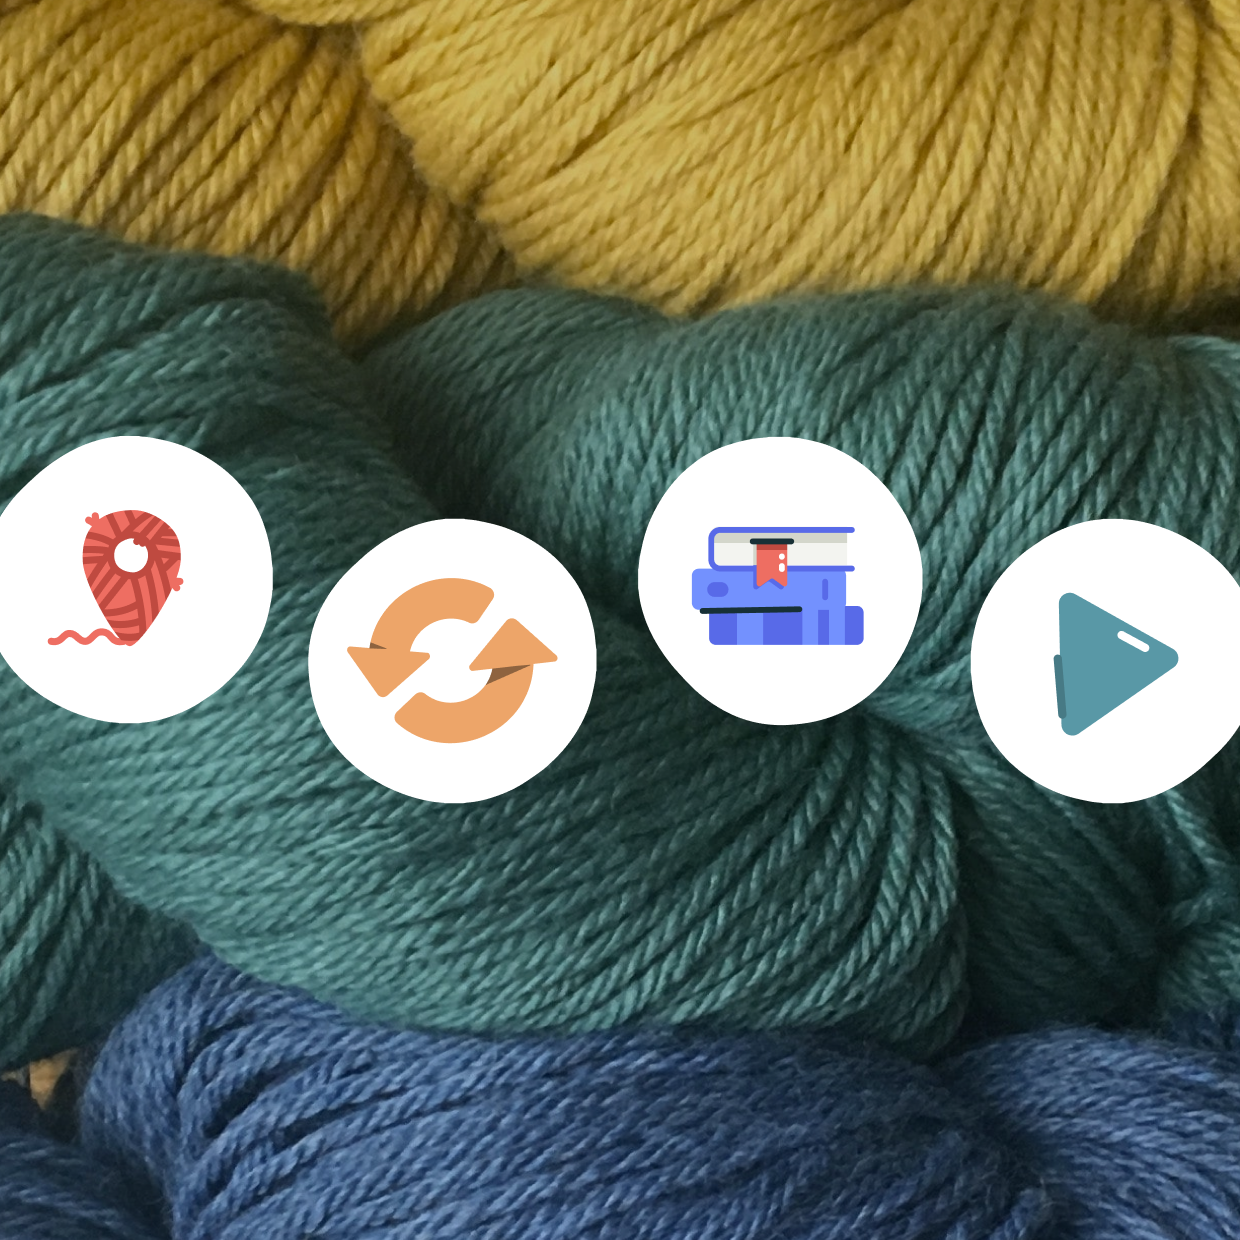 photo of yellow, teal, and blue yarns with Ravelry icons in a waving line across the image